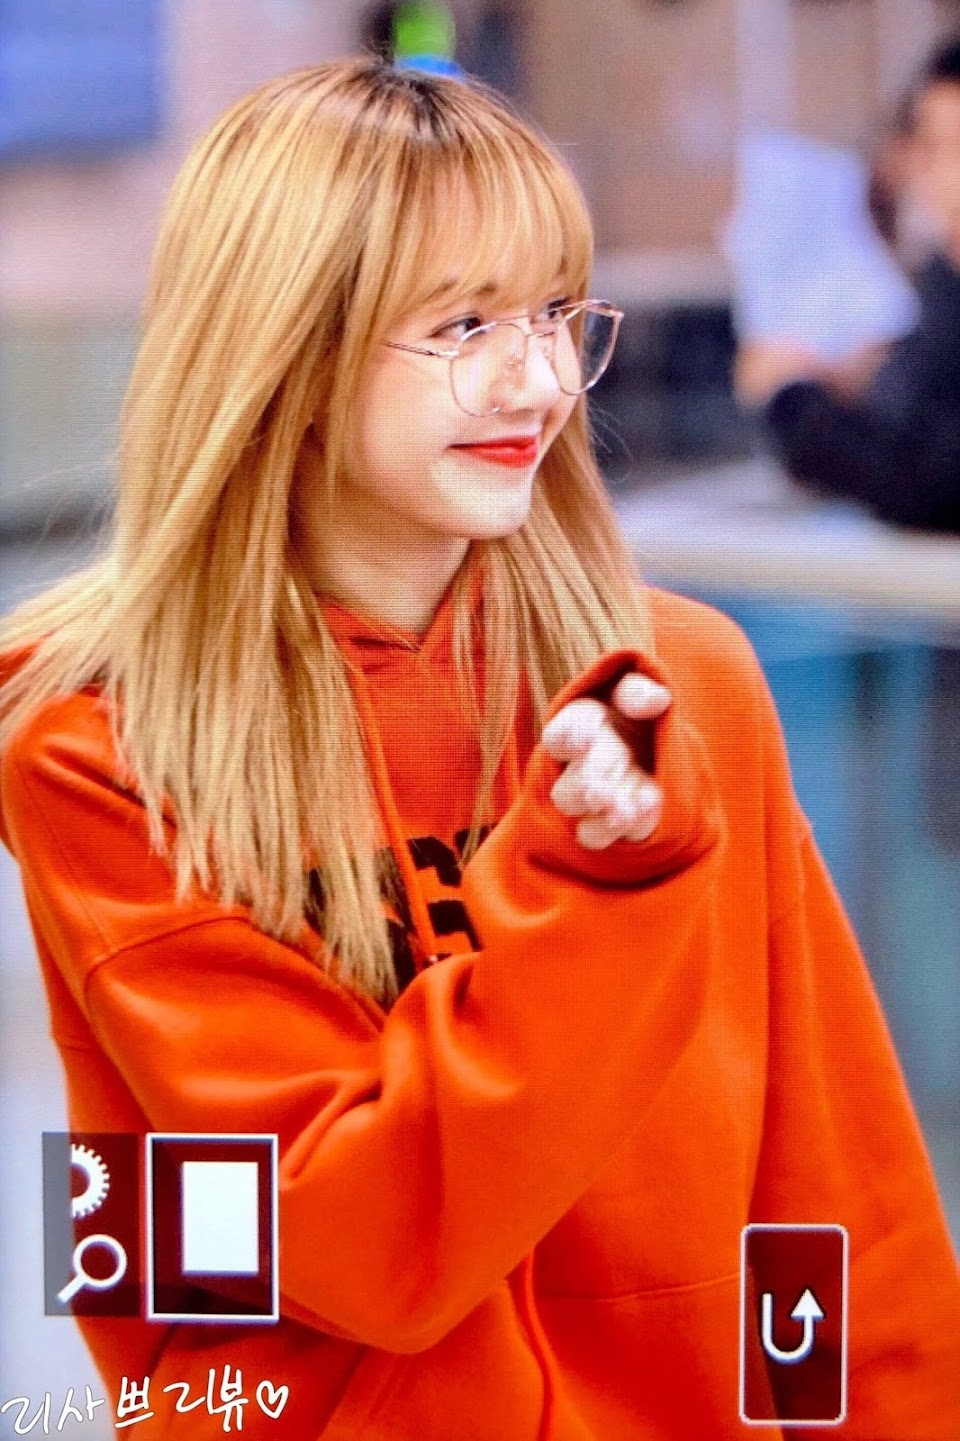 blackpinkrainbow_orange_lisa